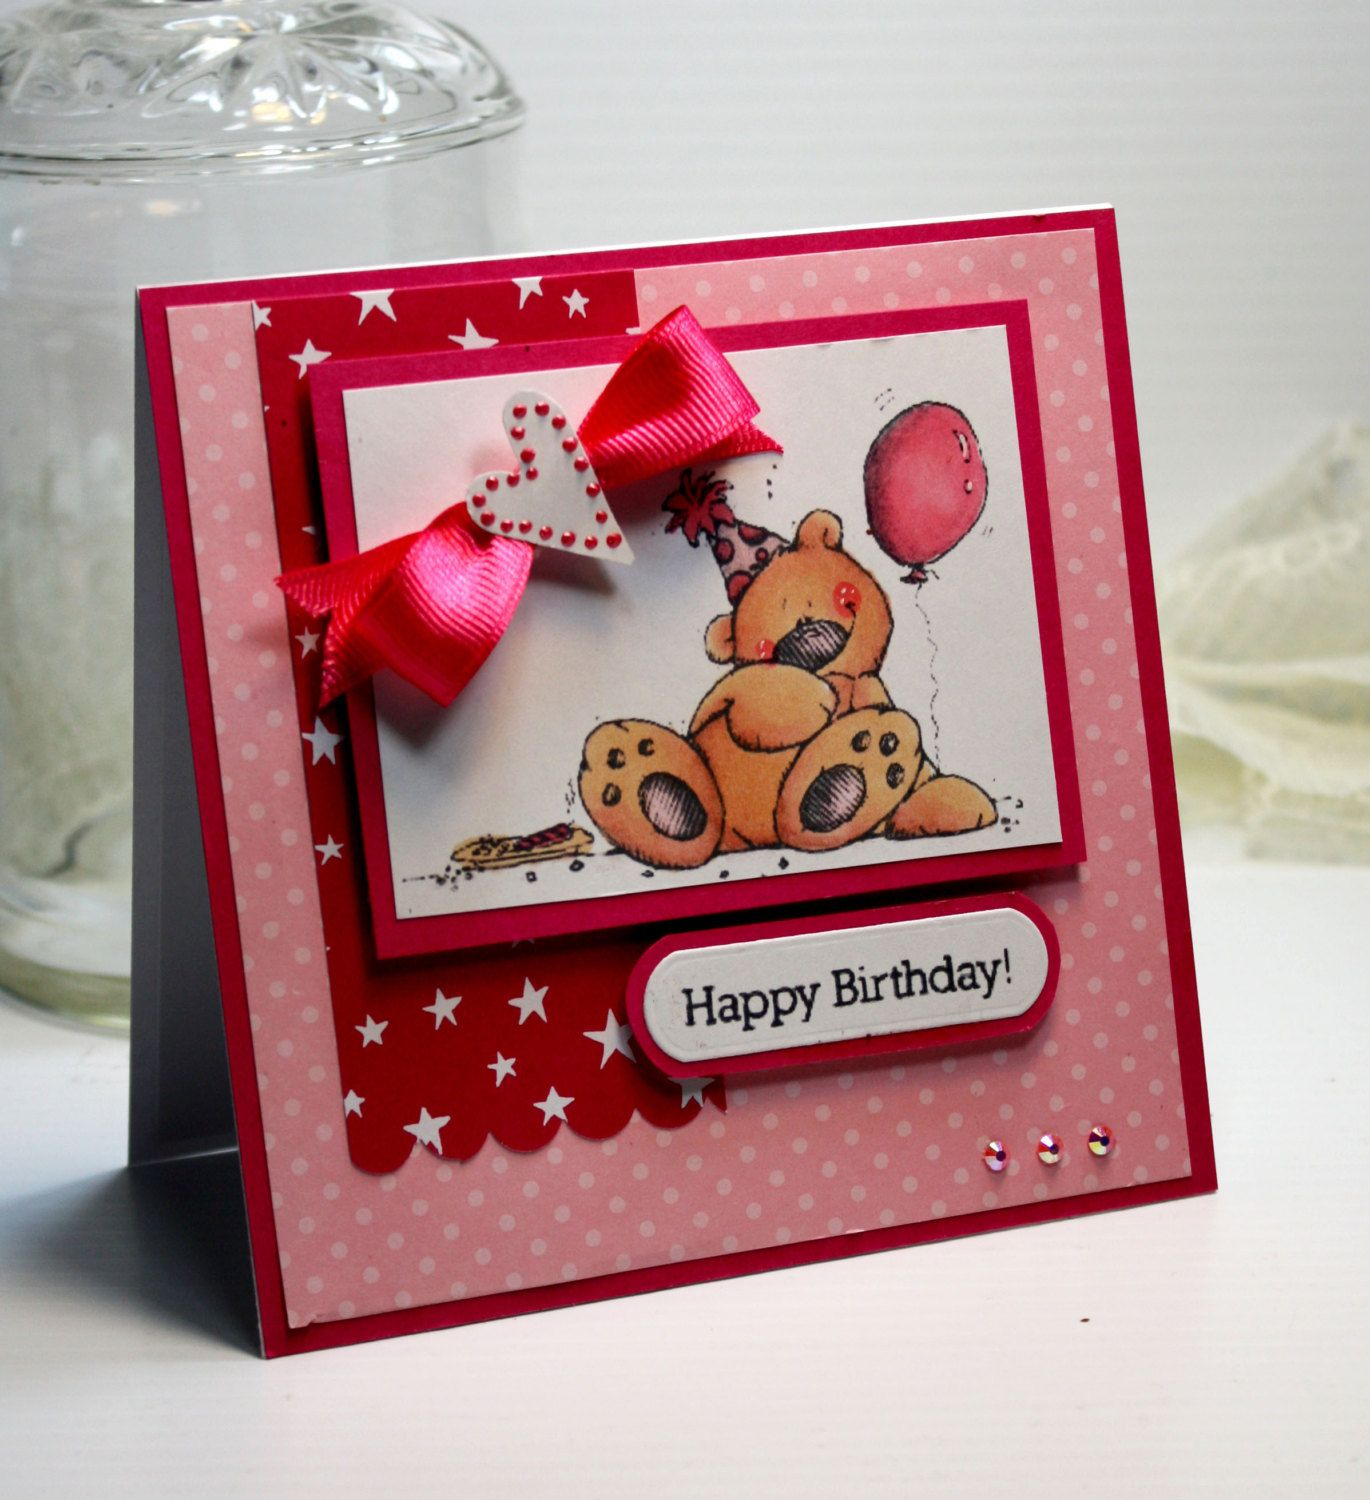 Birthday card handmade birthday greeting card 3d card happy birthday card handmade birthday greeting card 3d card happy birthday whipper snapper bear girl birthday celebrate stationery ooak bookmarktalkfo Choice Image